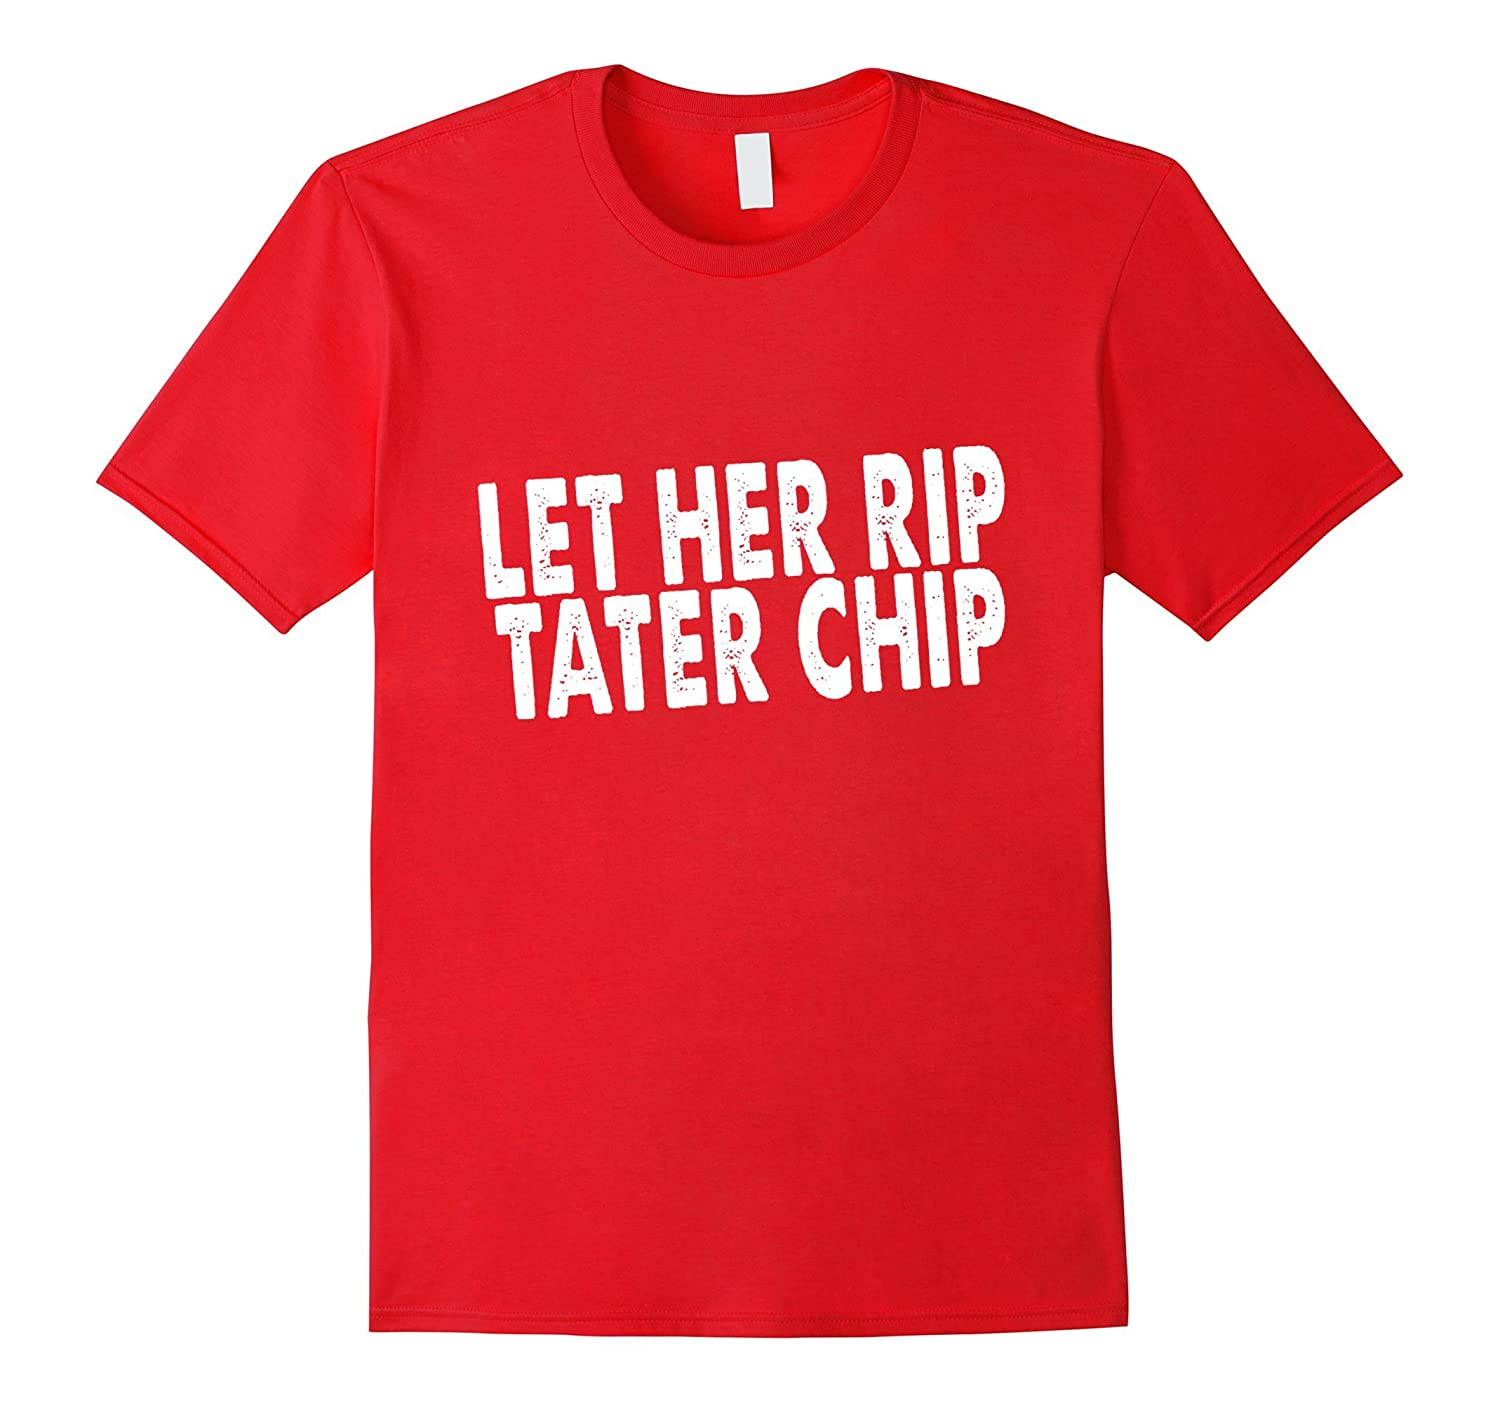 Let Her Rip, Tater Chip, Funny Car Video Graphic T Shirt